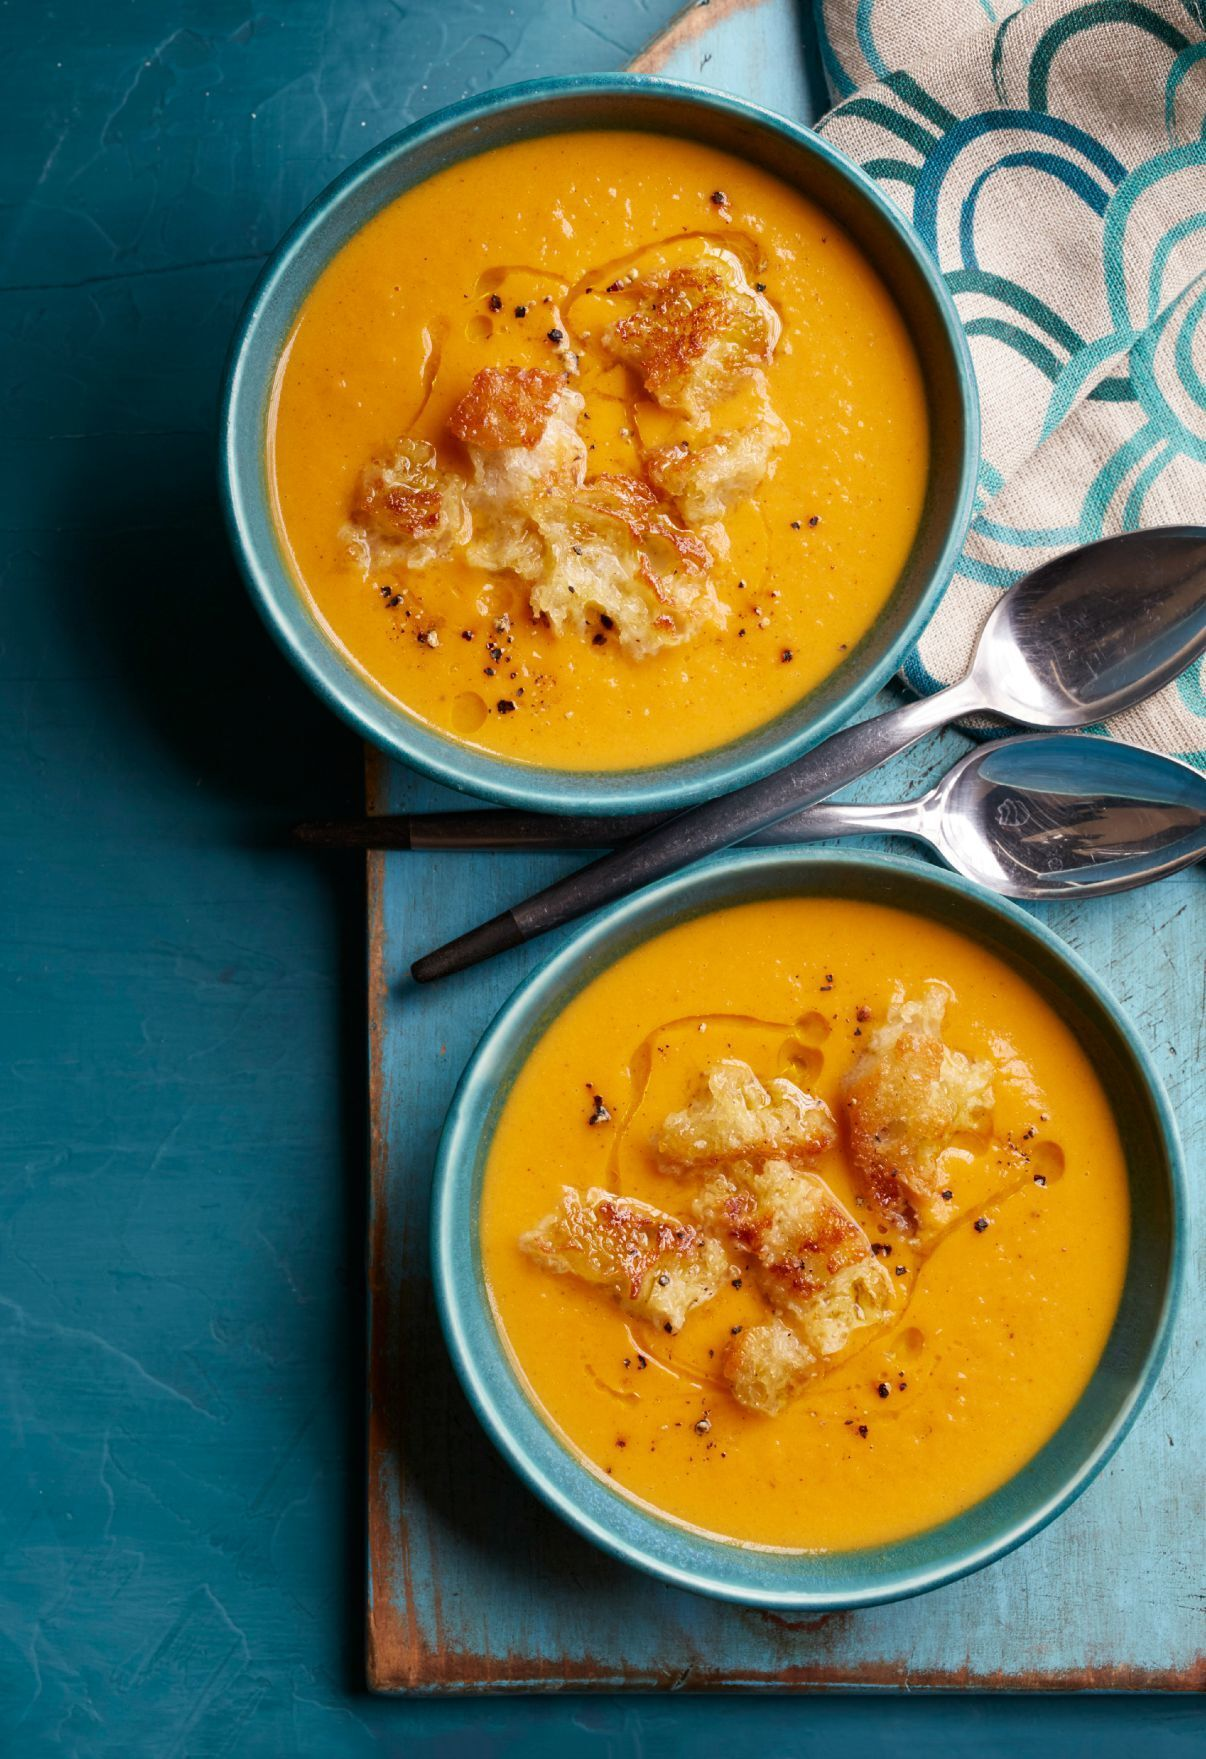 Cinnamon-Spiced Sweet Potato Soup with Maple Croutons